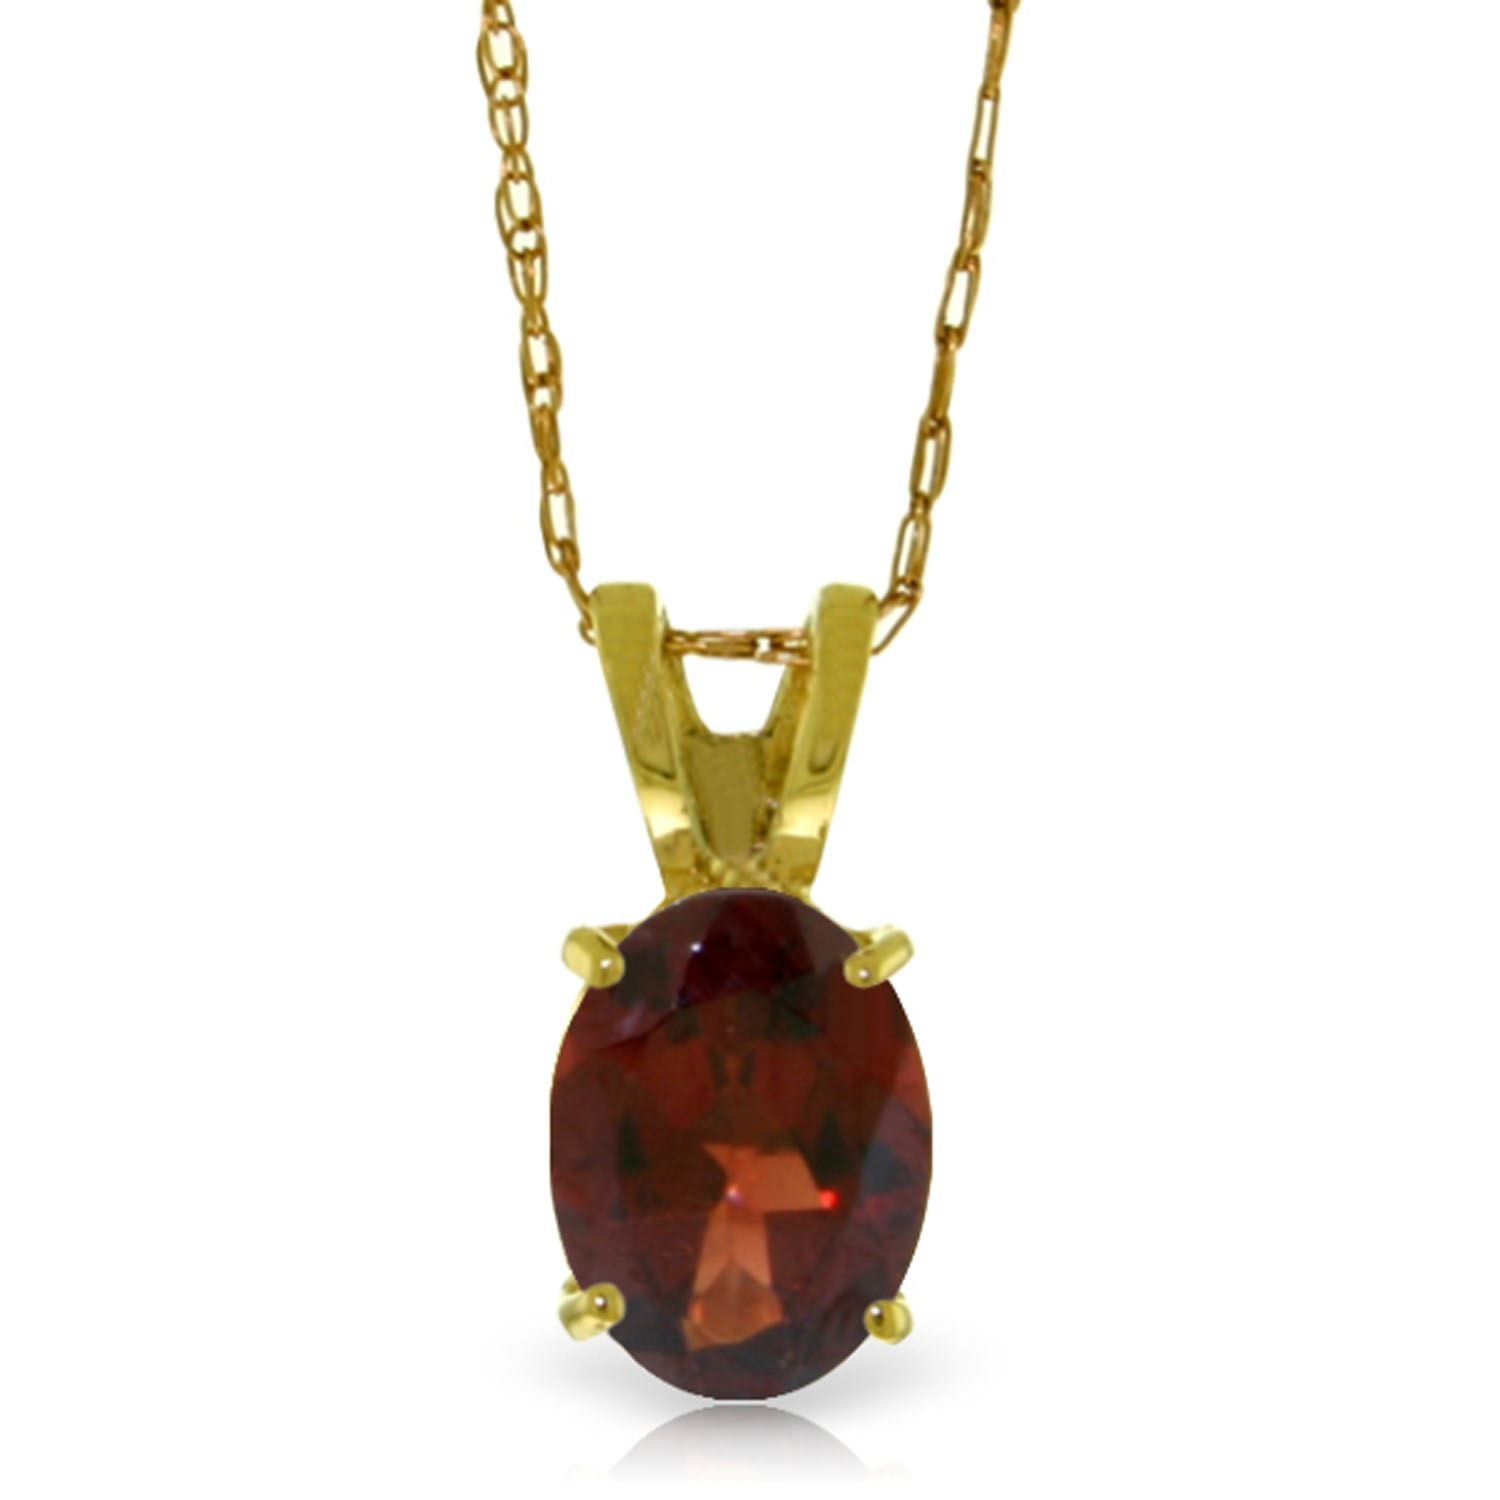 ALARRI 0.85 Carat 14K Solid Gold Visions Of Love Garnet Necklace with 18 Inch Chain Length